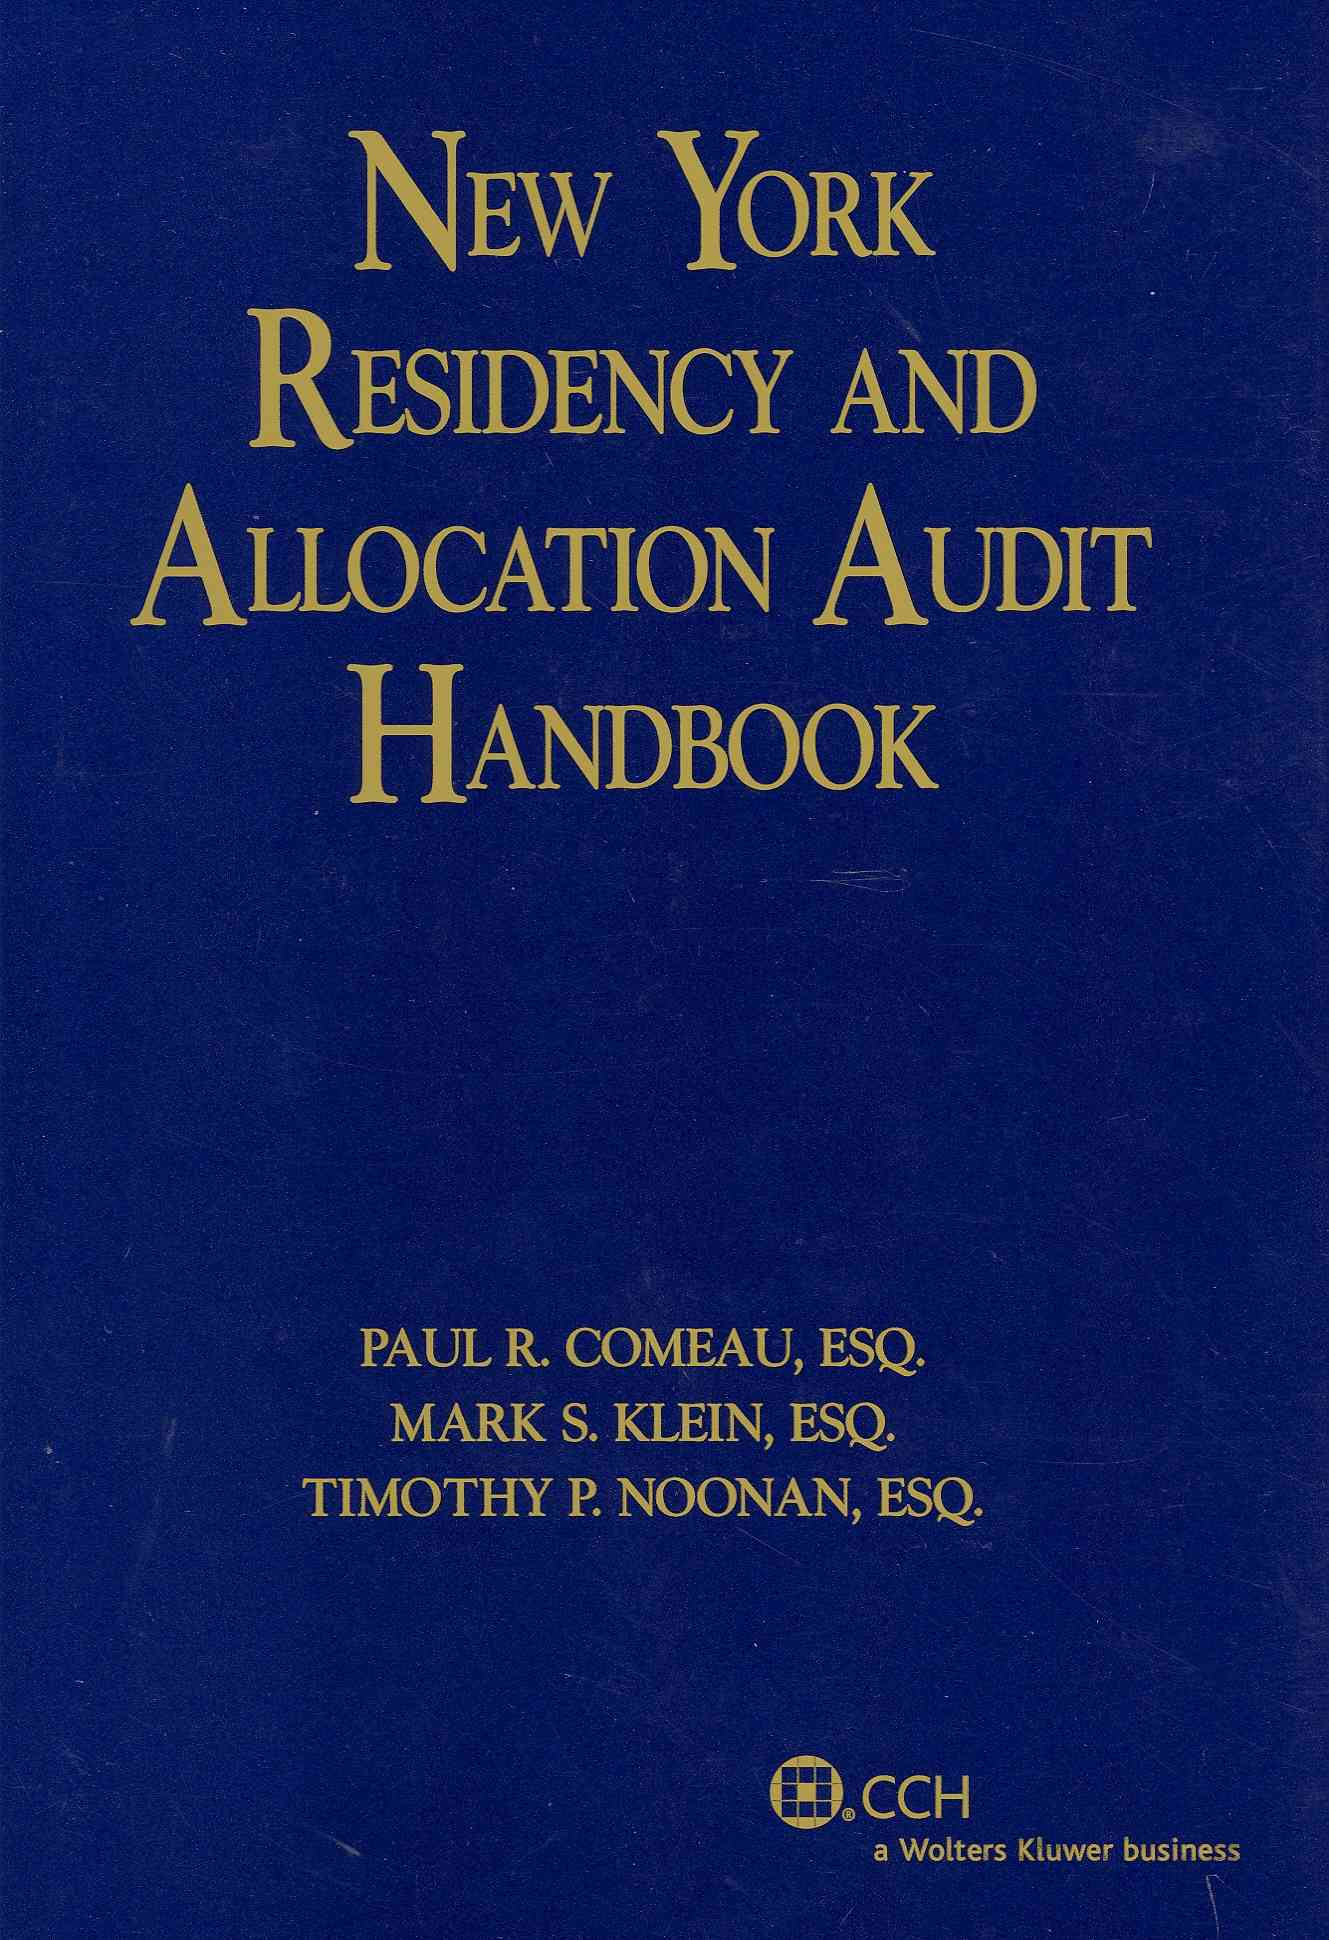 New York Residency and Allocation Audit Handbook (Paperback)